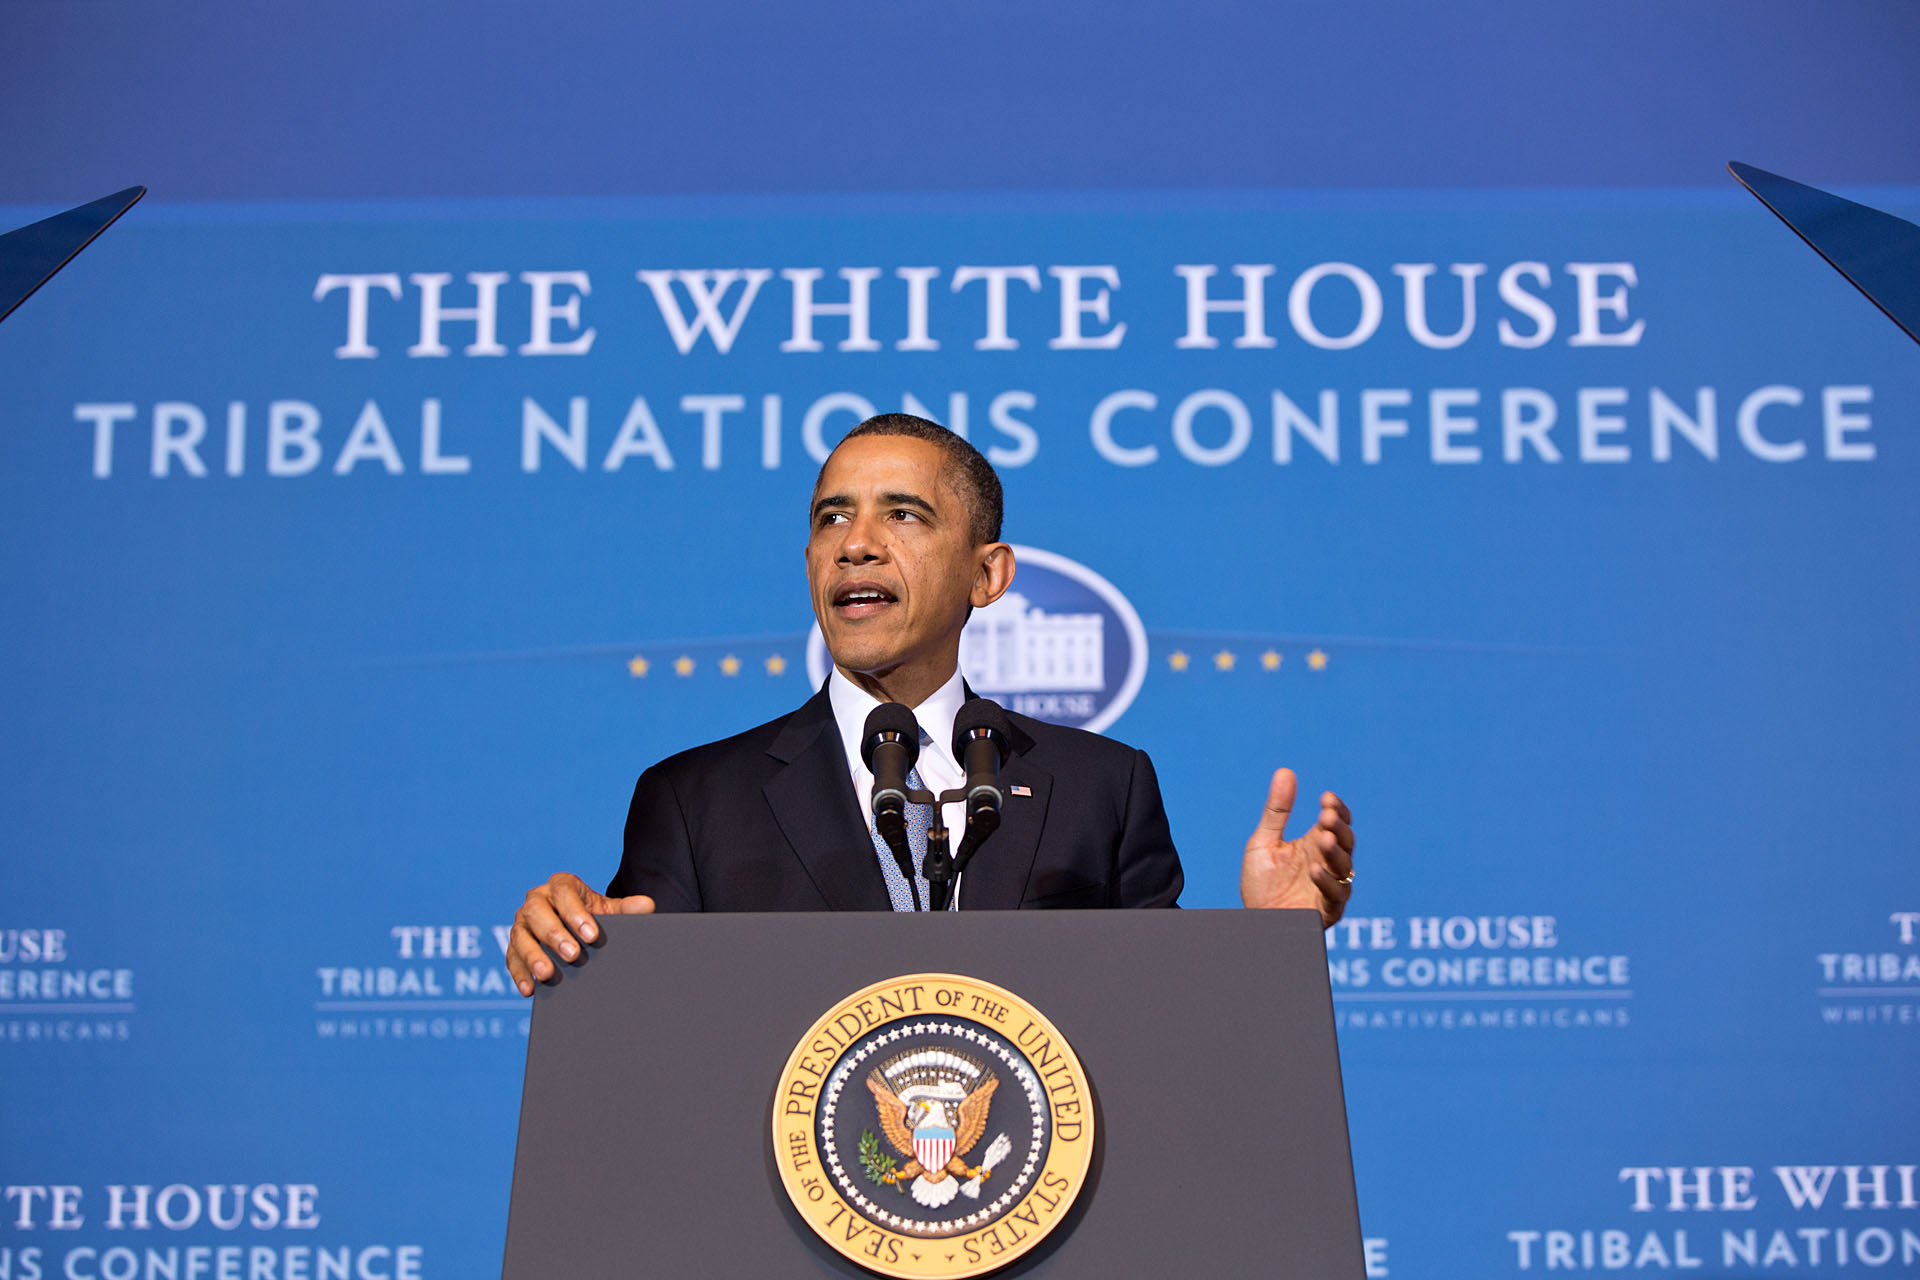 President Barack Obama delivers remarks during the White House Tribal Nations Conference (December 5, 2012)